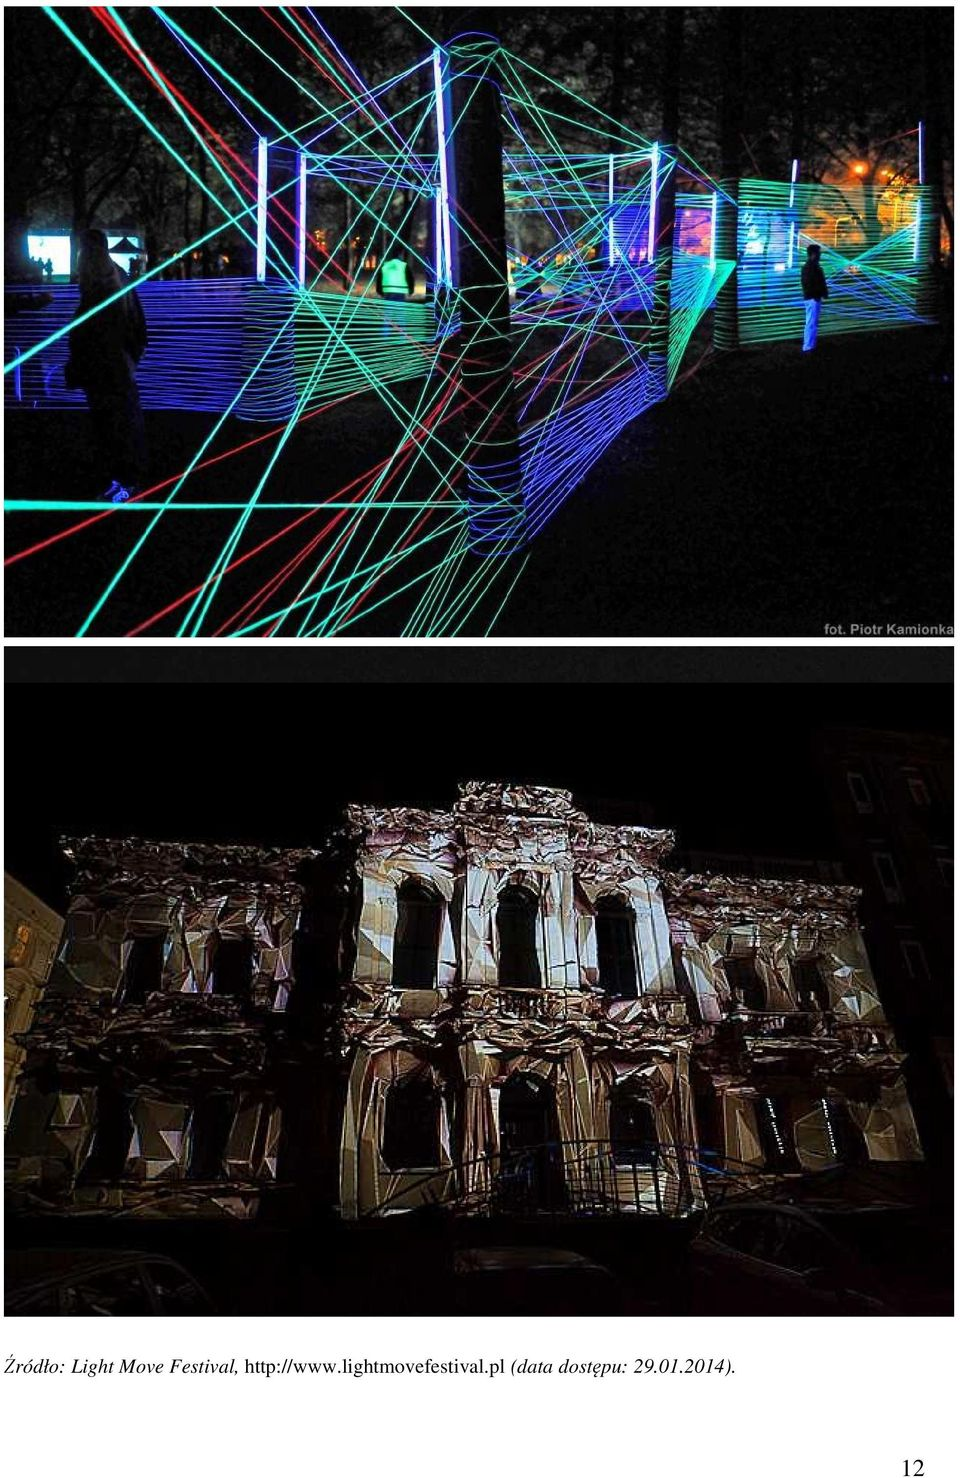 lightmovefestival.